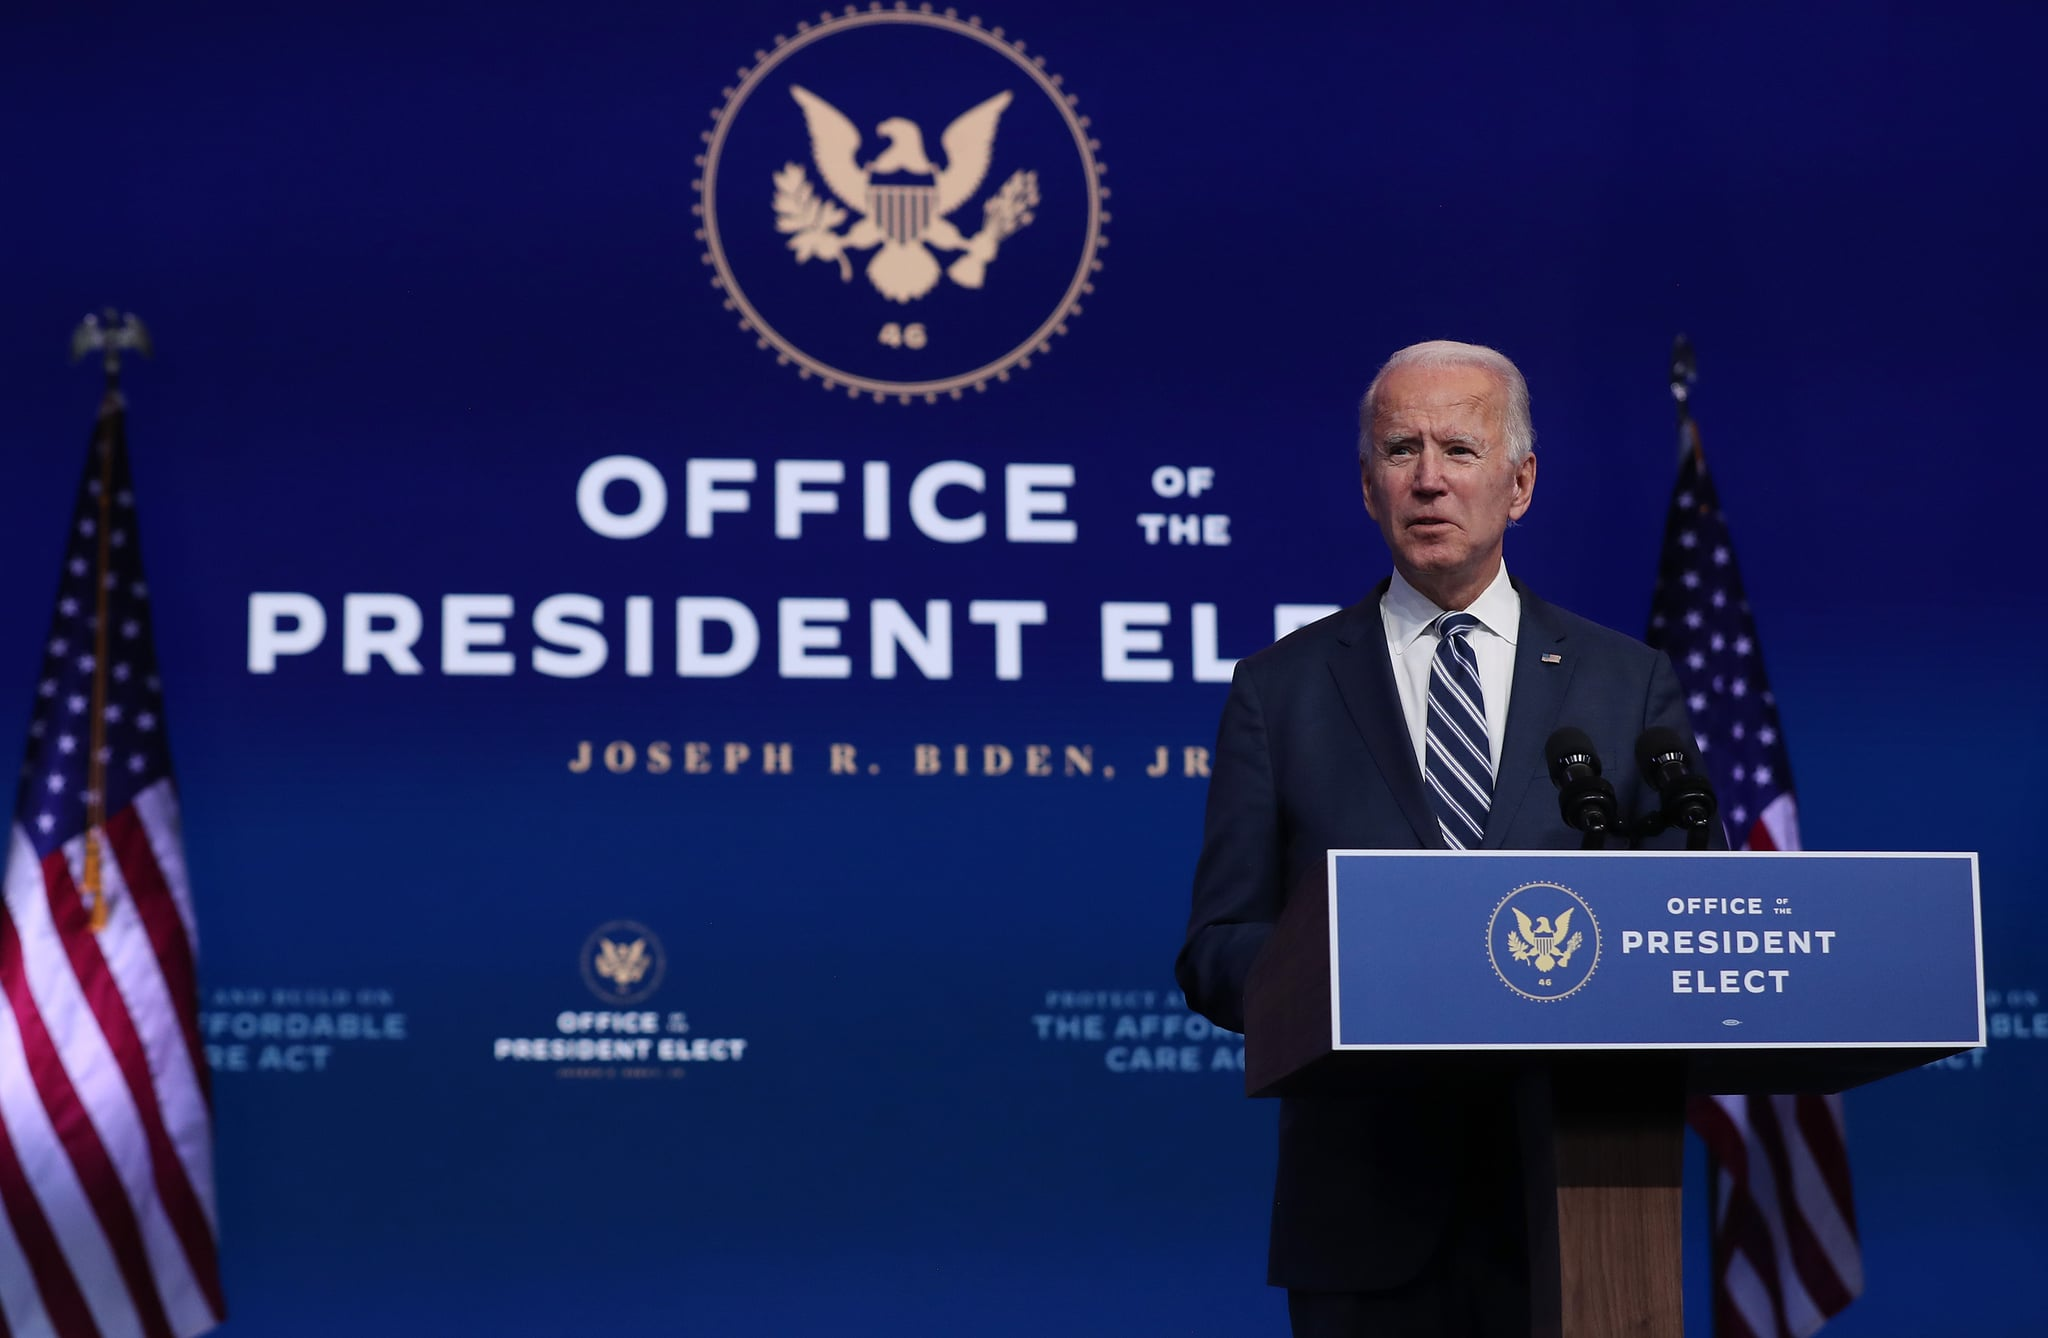 WILMINGTON, DELAWARE - NOVEMBER 10: U.S. President-elect Joe Biden addresses the media about the Trump Administration's lawsuit to overturn the Affordable Care Act on November 10, 2020 at the Queen Theatre in Wilmington, Delaware. Mr. Biden also answered questions about the process of the transition and how a Biden Administration would work with Republicans. (Photo by Joe Raedle/Getty Images)